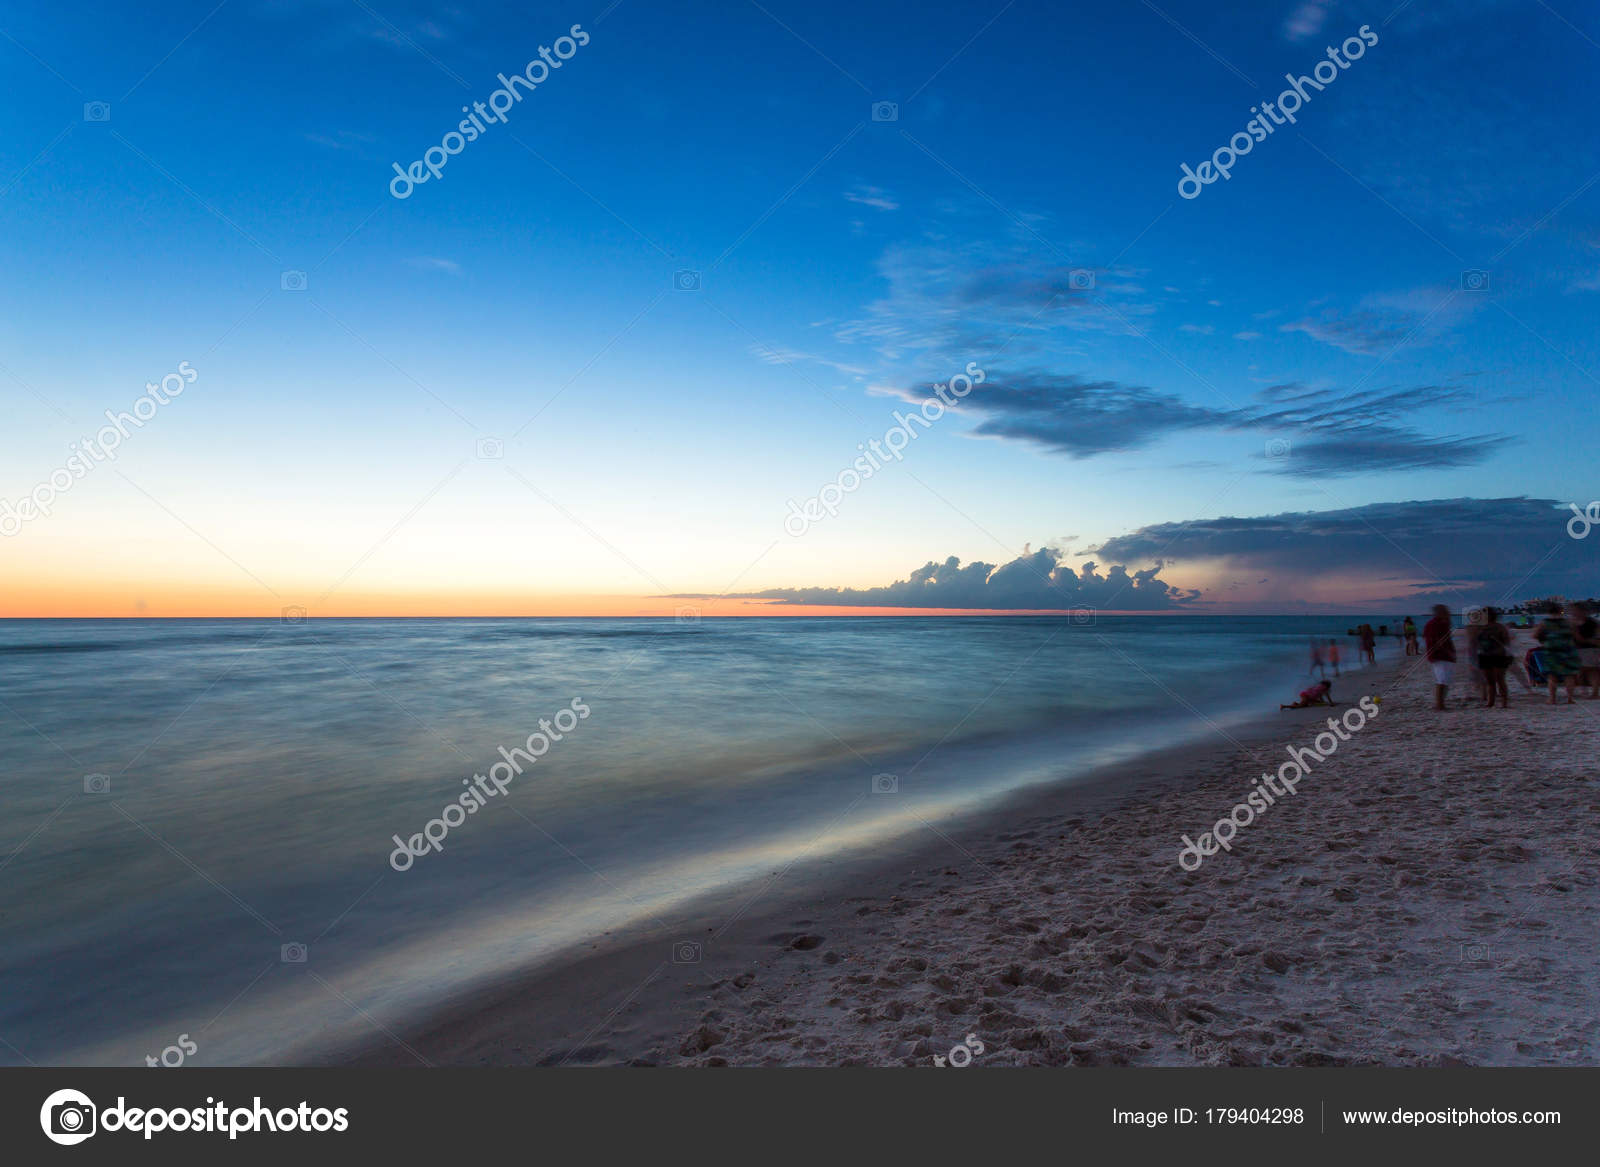 Iconic naples sunset beach naples pier symbol famous city southwest the naples pier is the symbol of this famous city in southwest florida usa amazing and calm ocean during sunset cloudscape after a big tropical storm buycottarizona Gallery